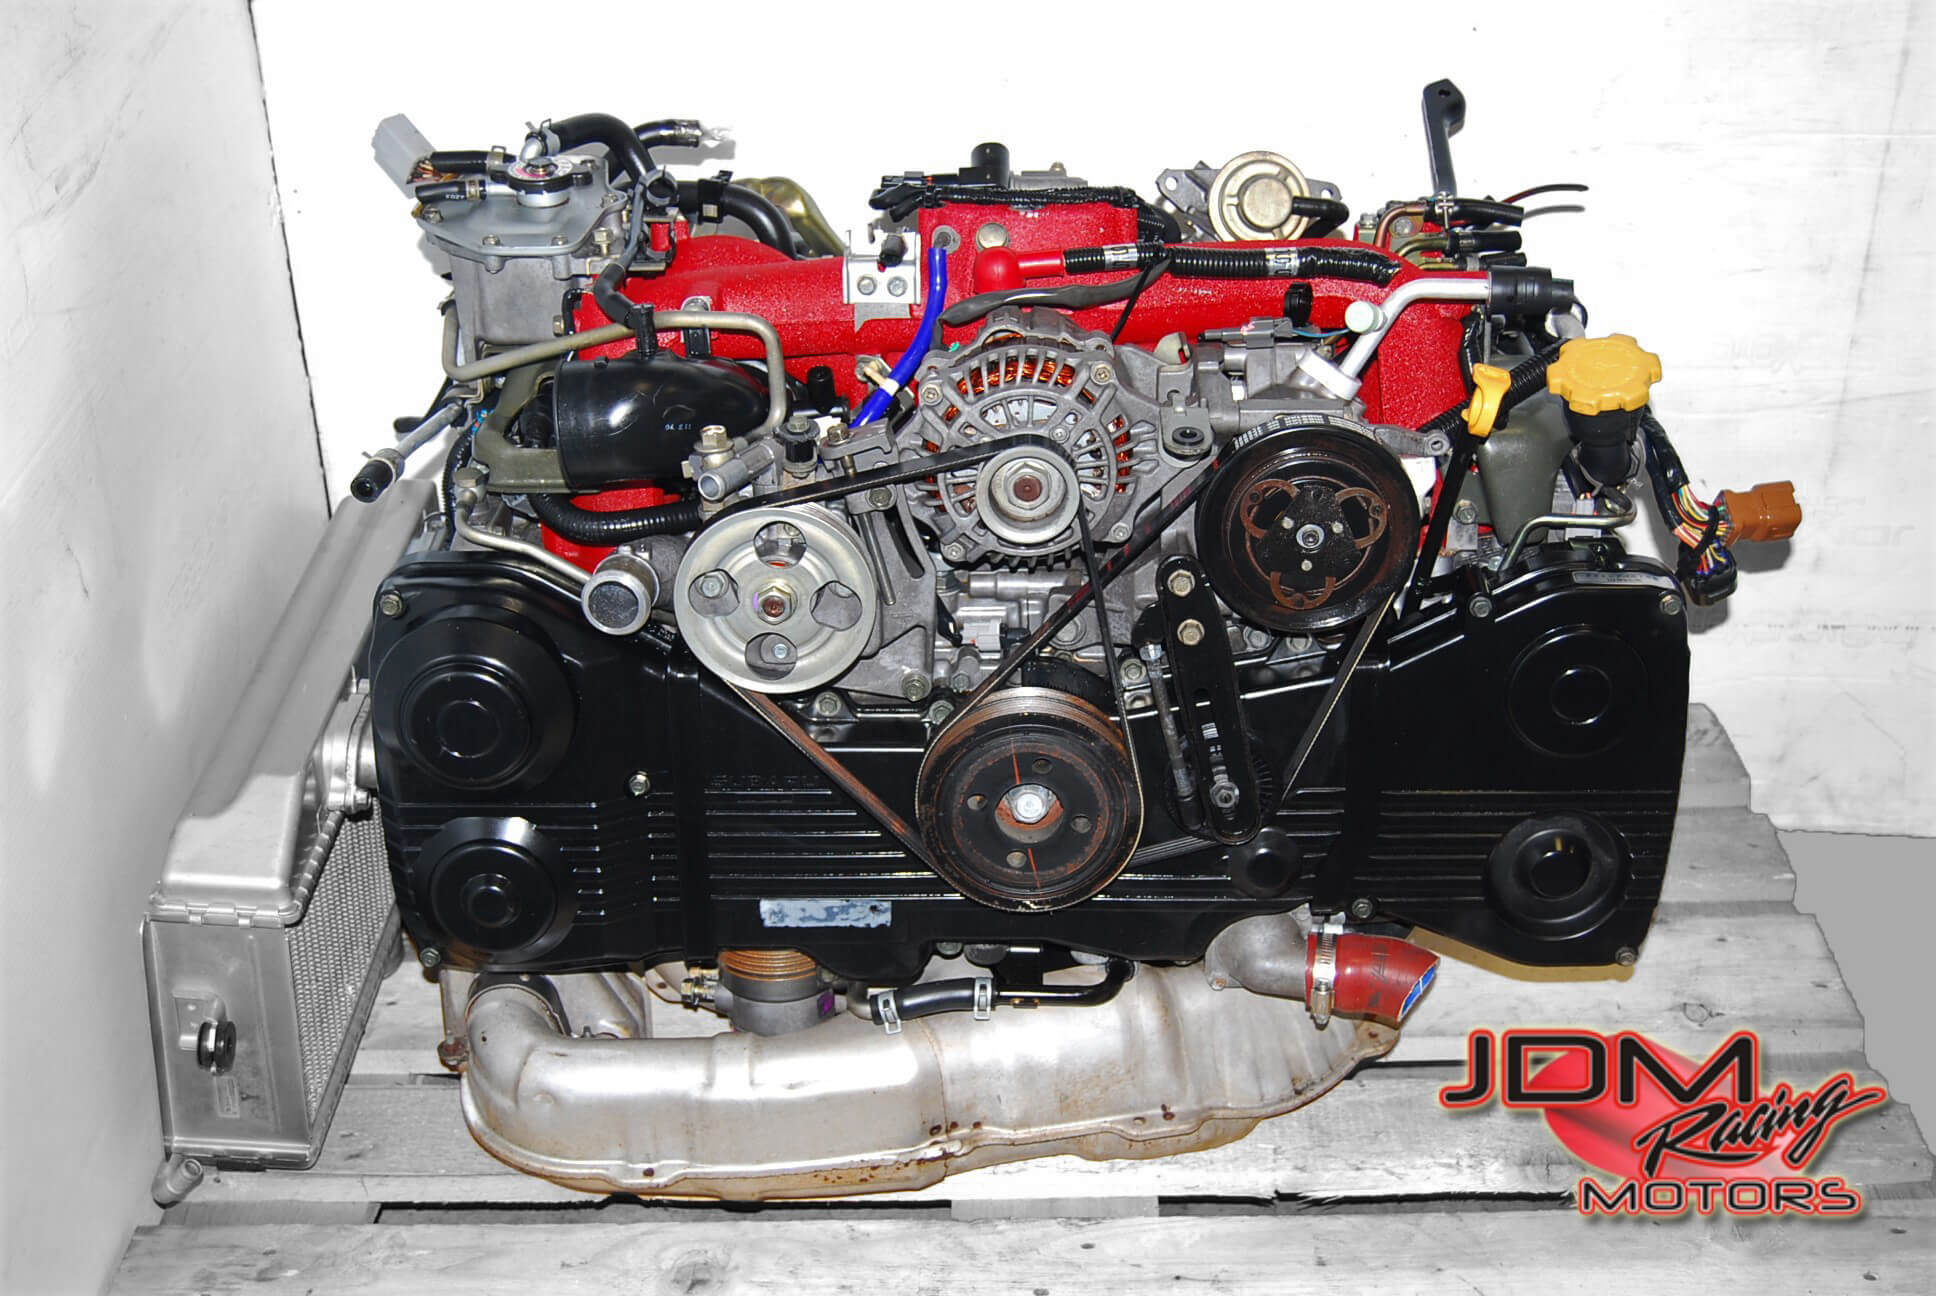 Motors For Sale >> Subaru Jdm Engines Parts Jdm Racing Motors